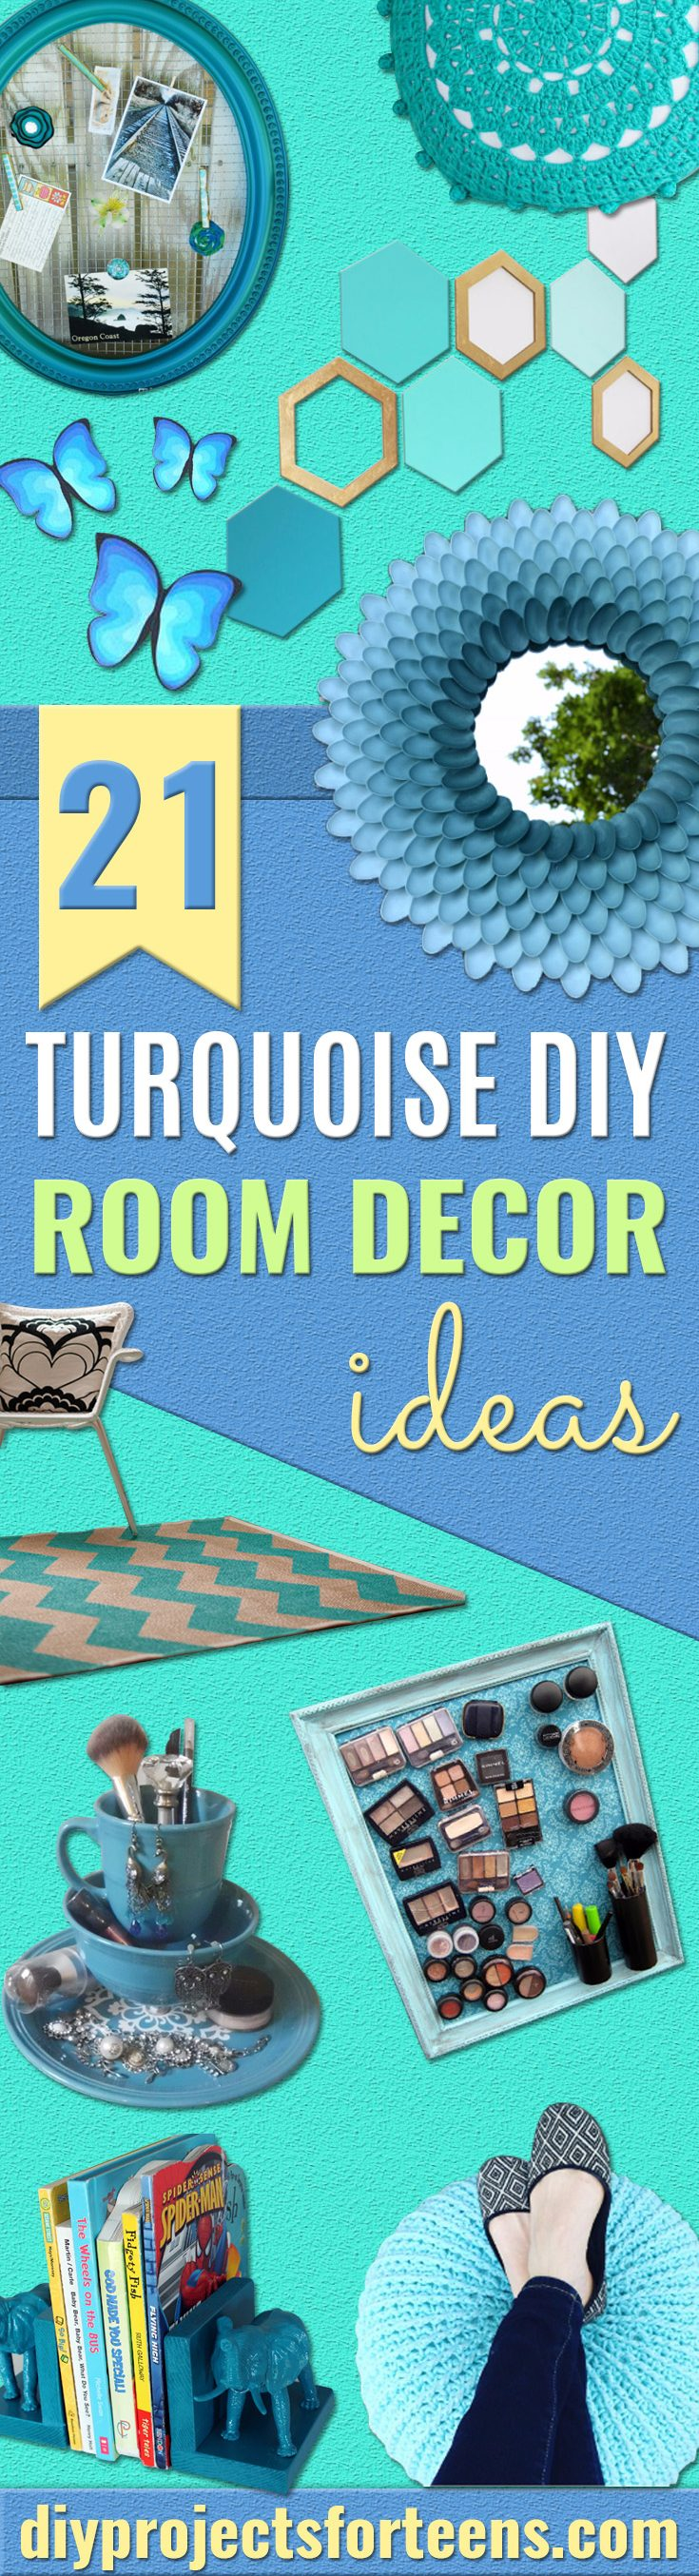 Cool Turquoise Room Decor Ideas - Fun Aqua Decorating Looks and Color for Teen Bedroom, Bathroom, Accent Walls and Home Decor - Fun Crafts and Wall Art for Your Room